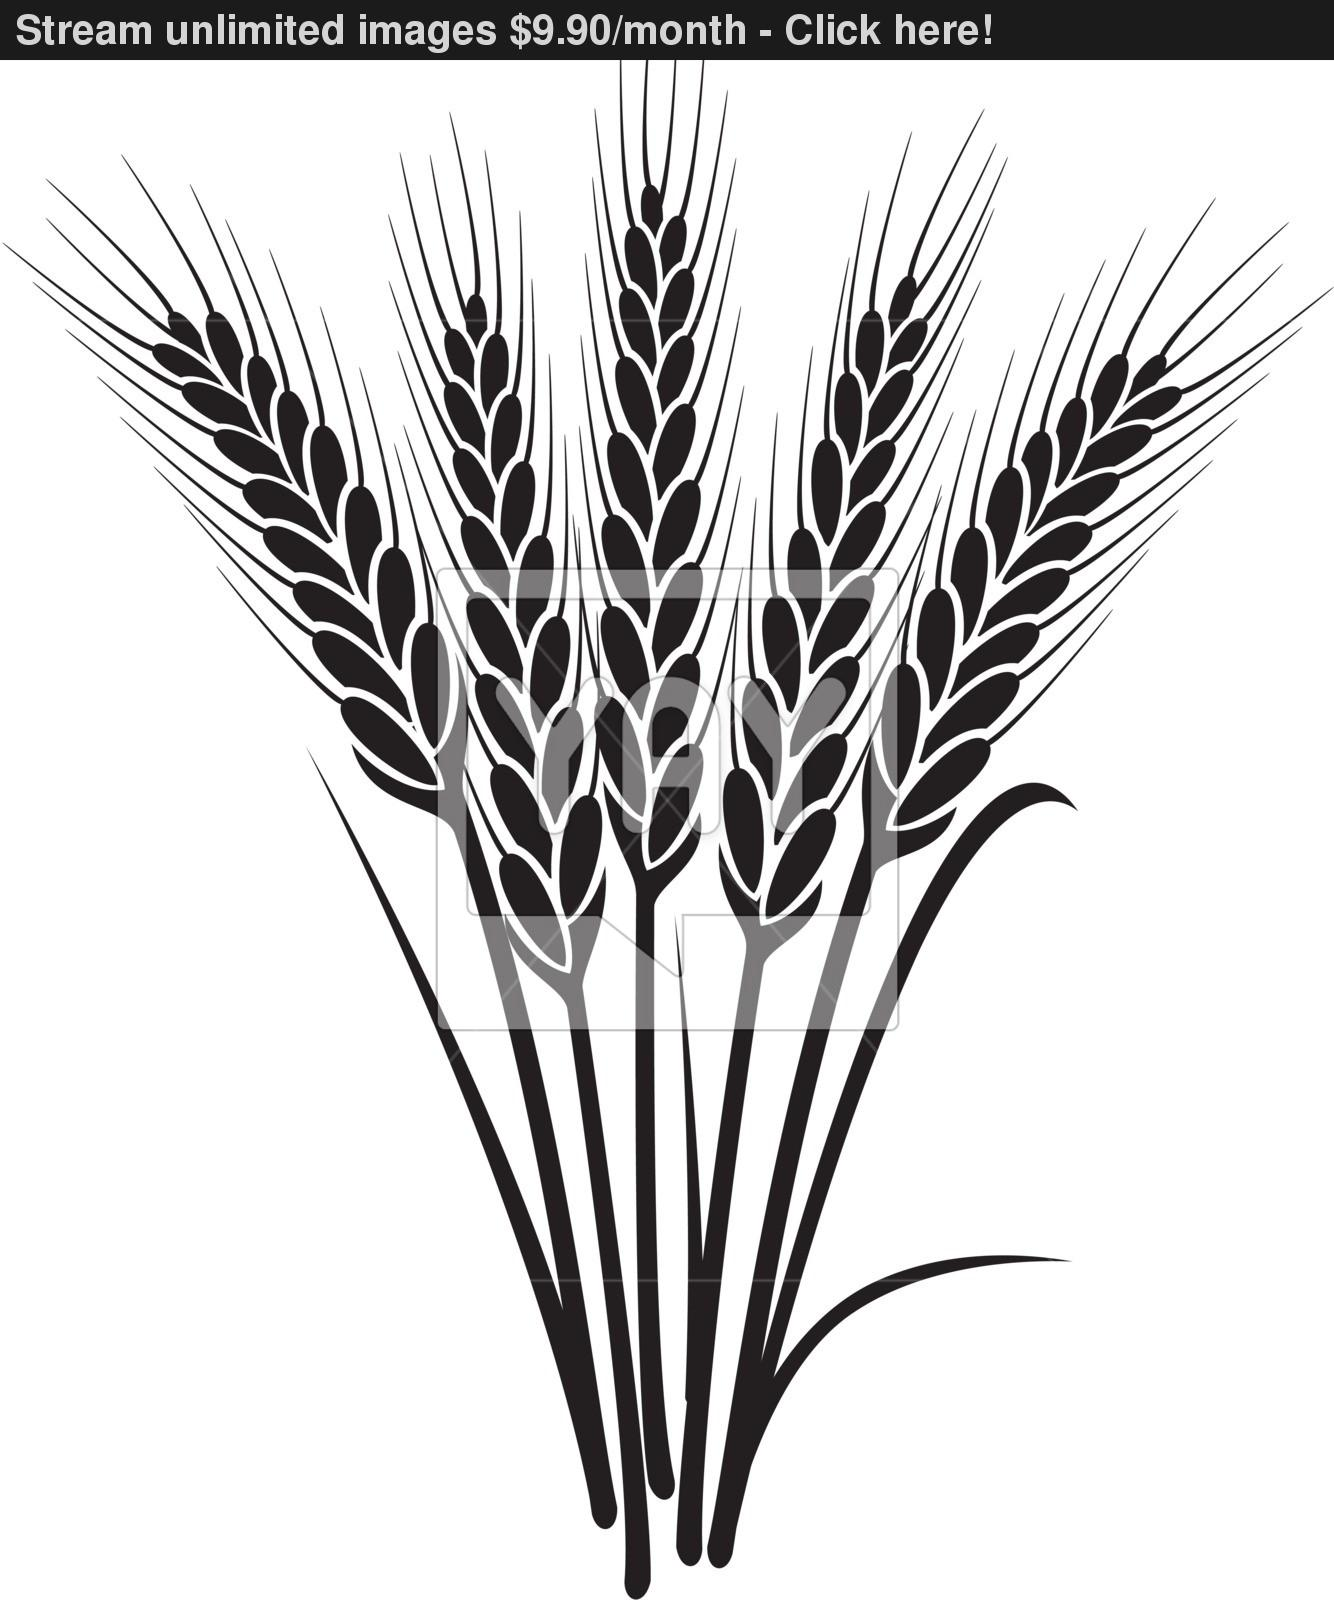 Wheat Harvest Black And White Clipart.